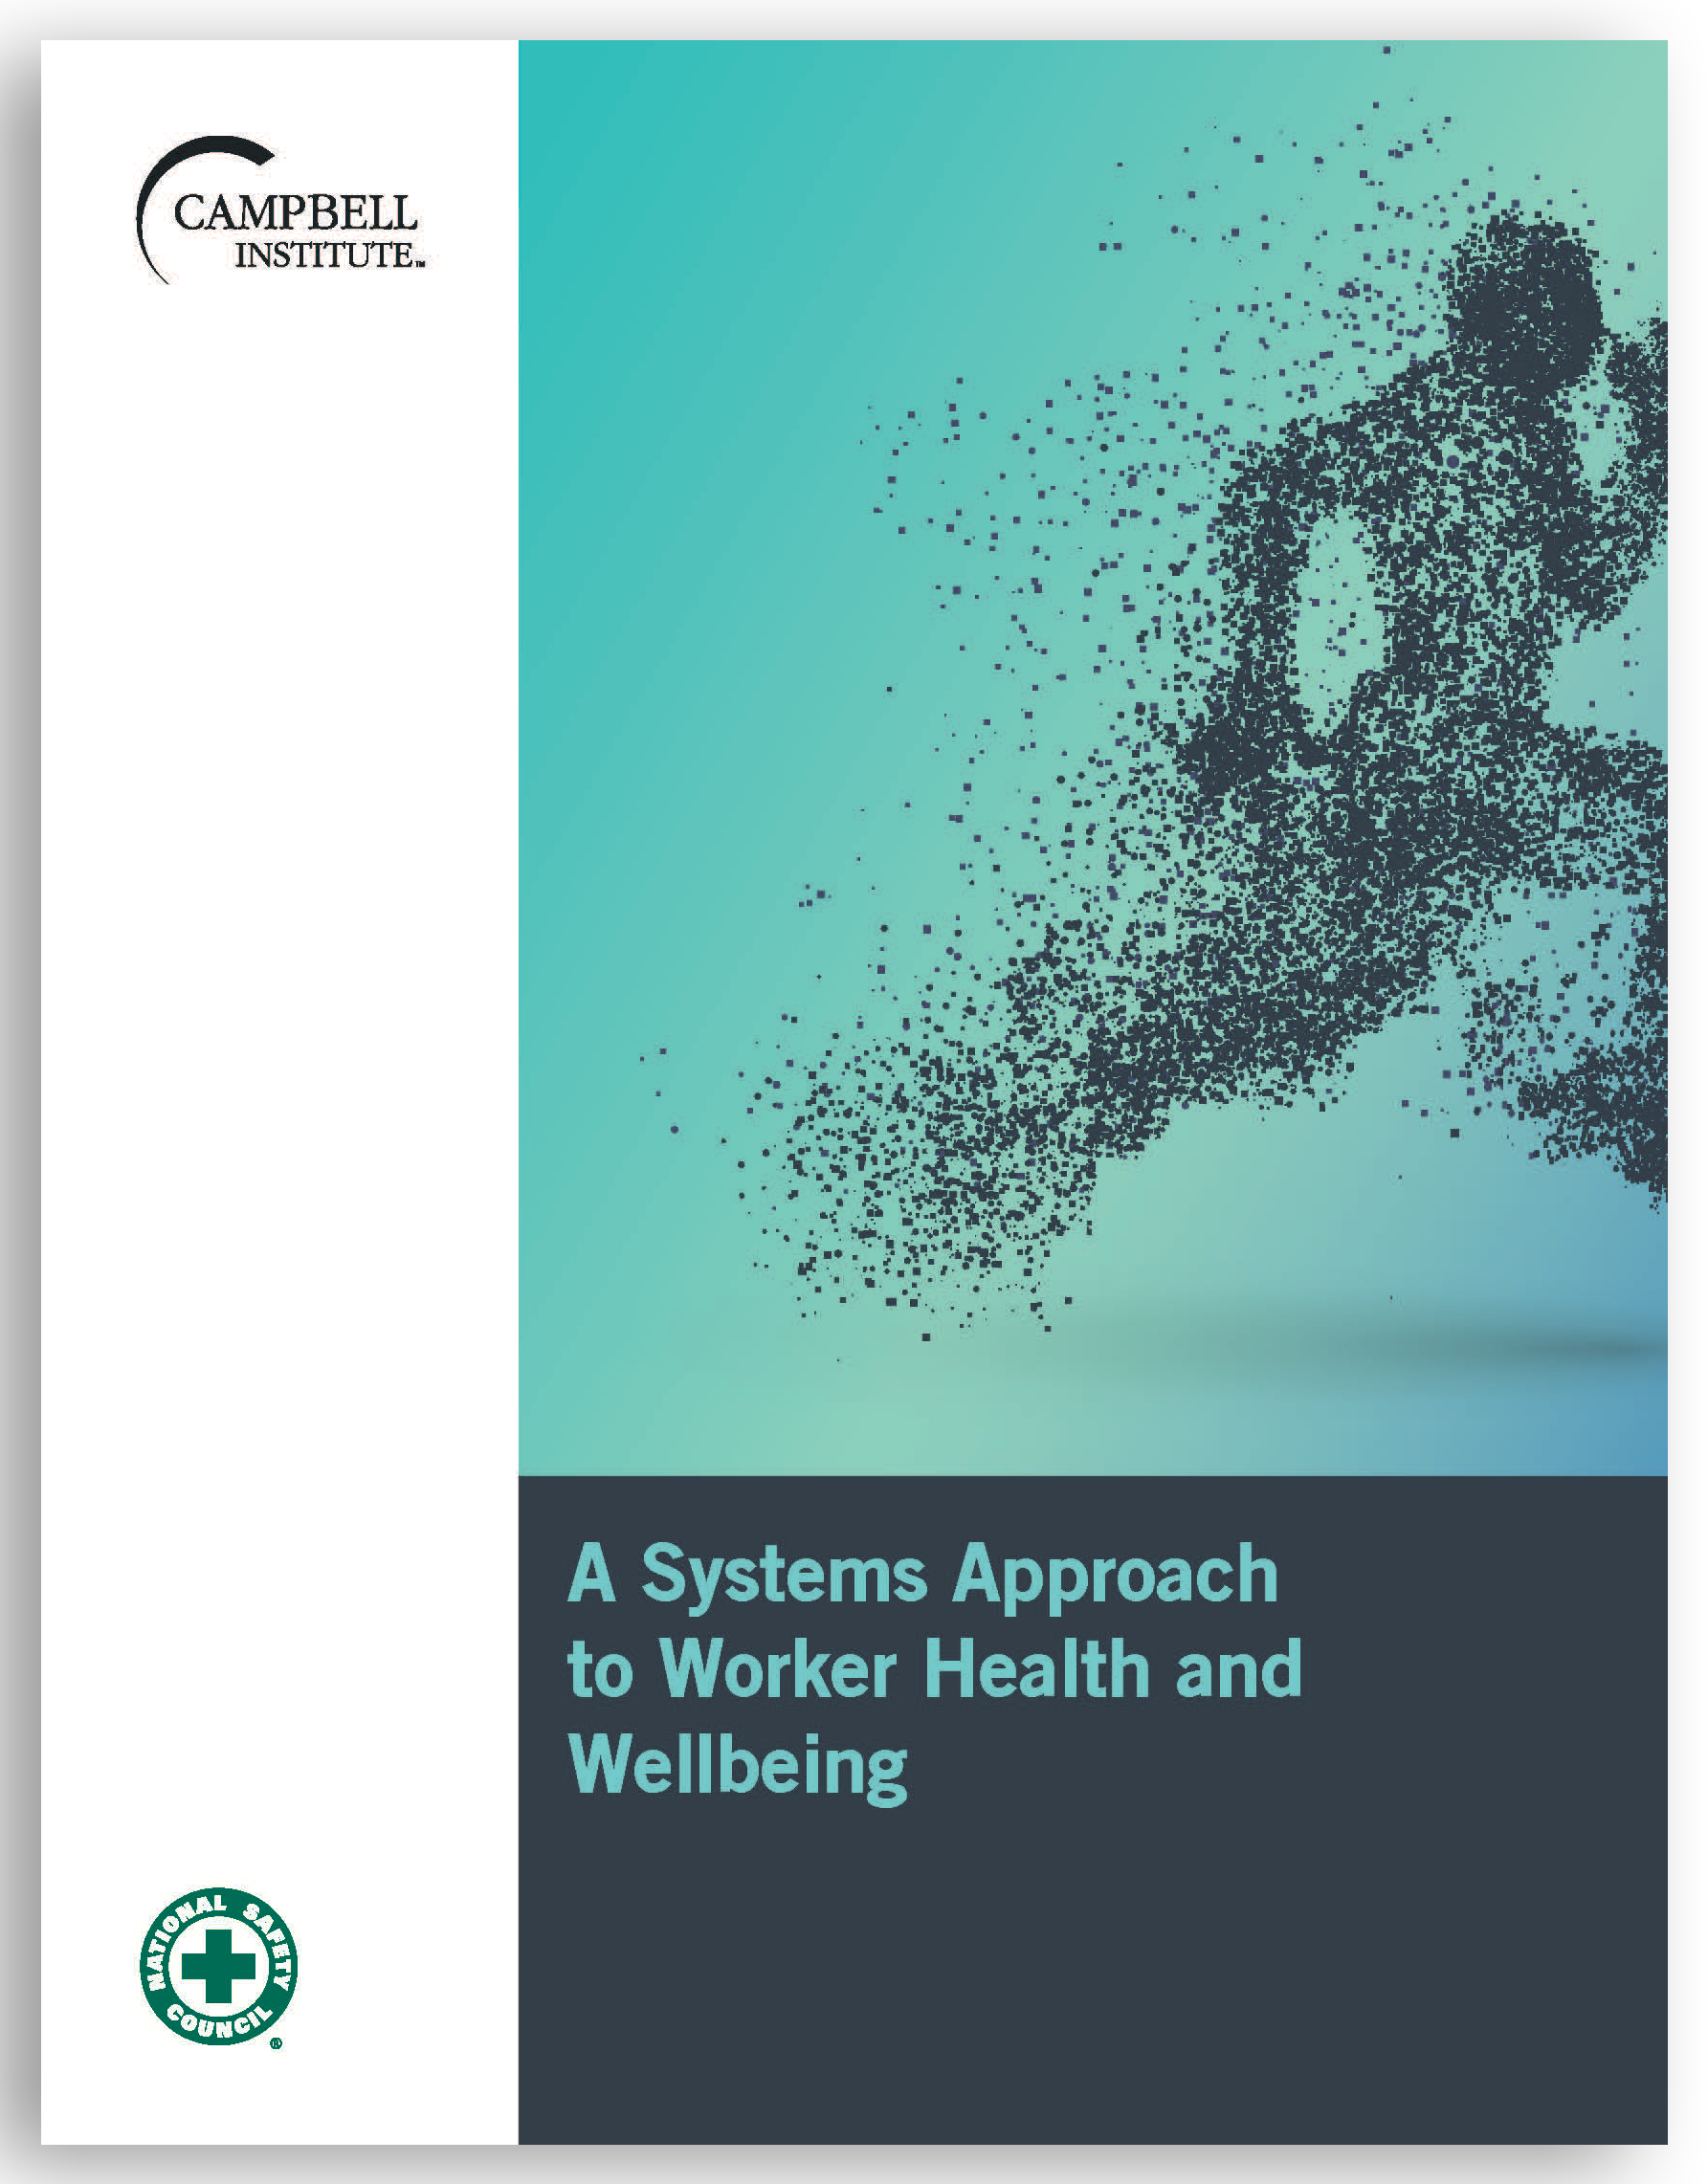 A Systems Approach to Worker Health and Wellbeing